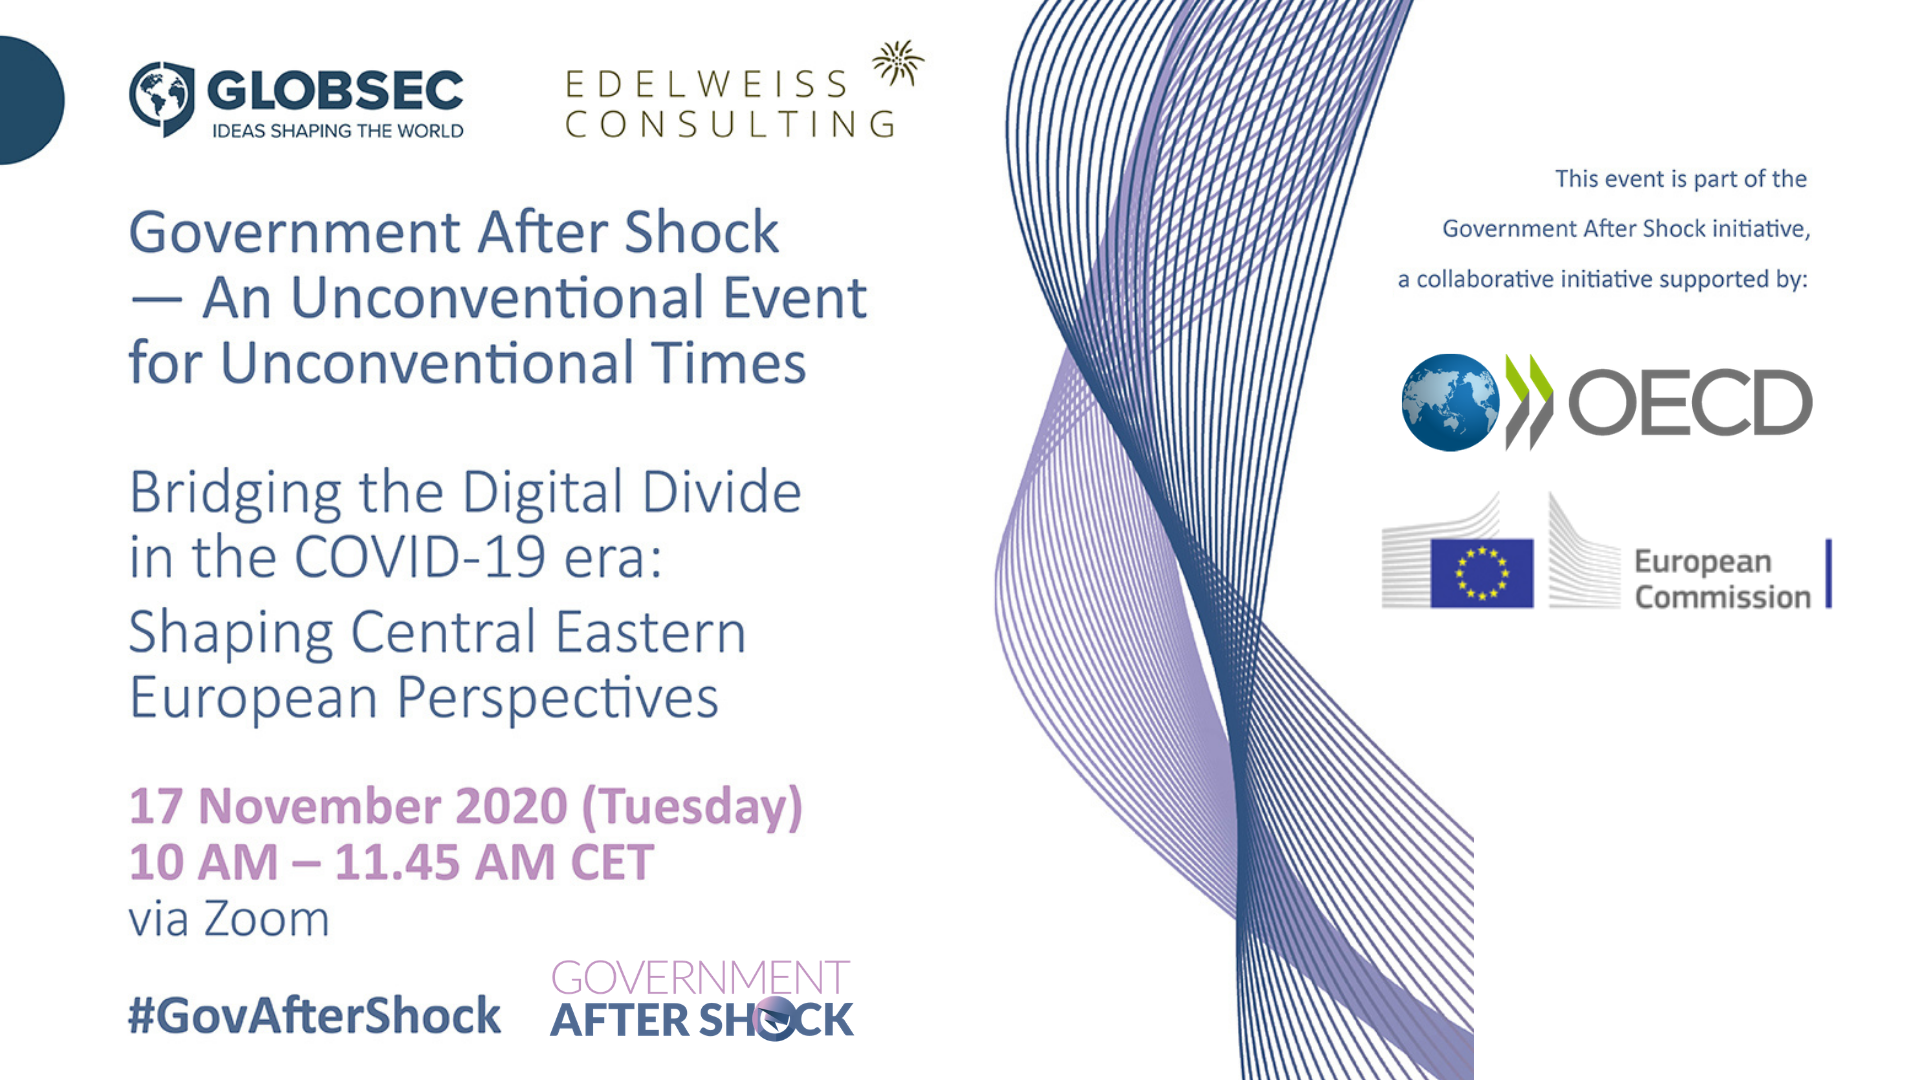 Bridging the Digital Divide in the COVID-19 era: Shaping Central Eastern European Perspectives